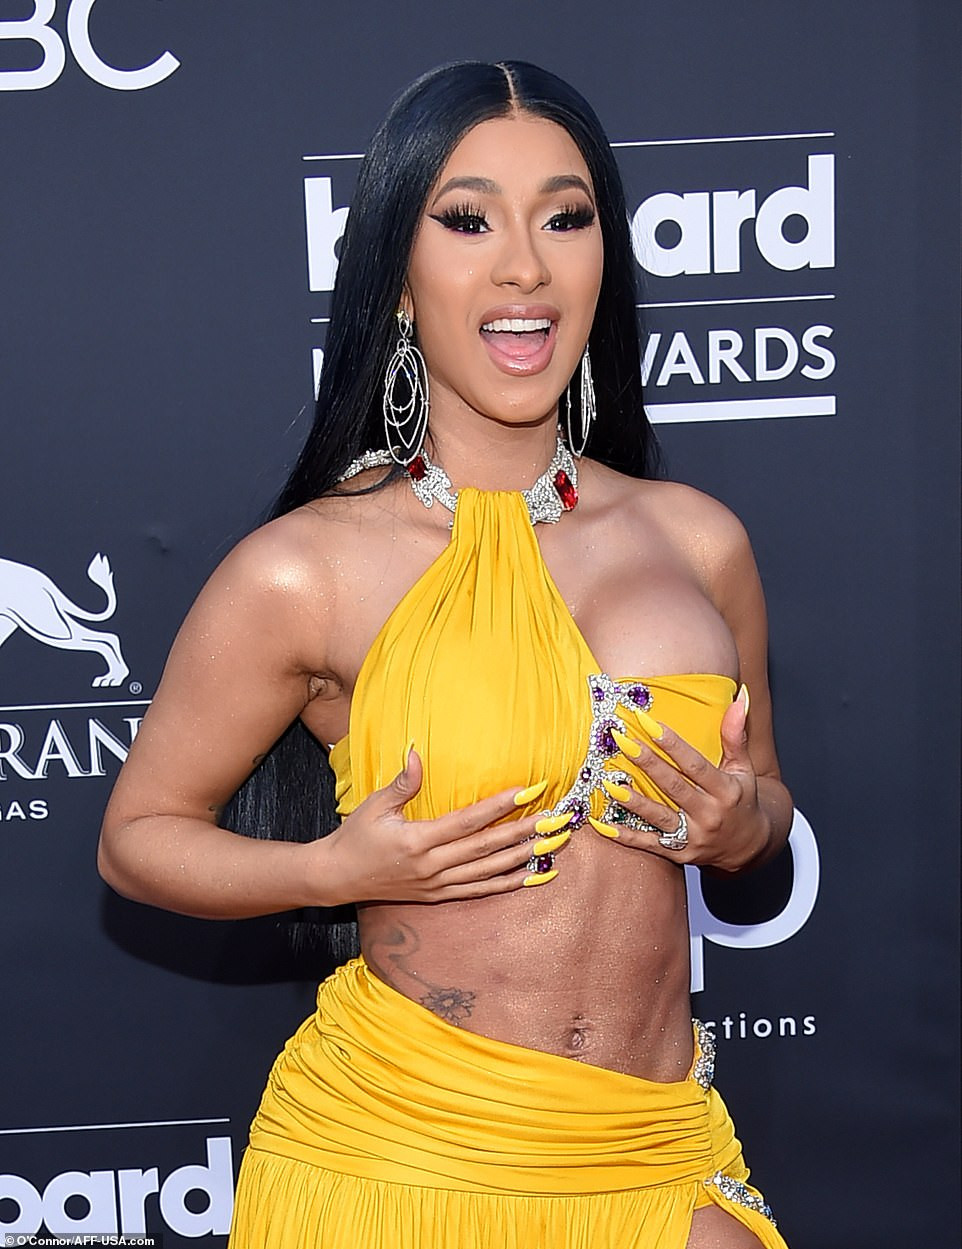 Cardi B Unveils Her Entire Back Tattoo With Bright Pink: CARDI B's Outfit To The Billboard Music Awards Leaves